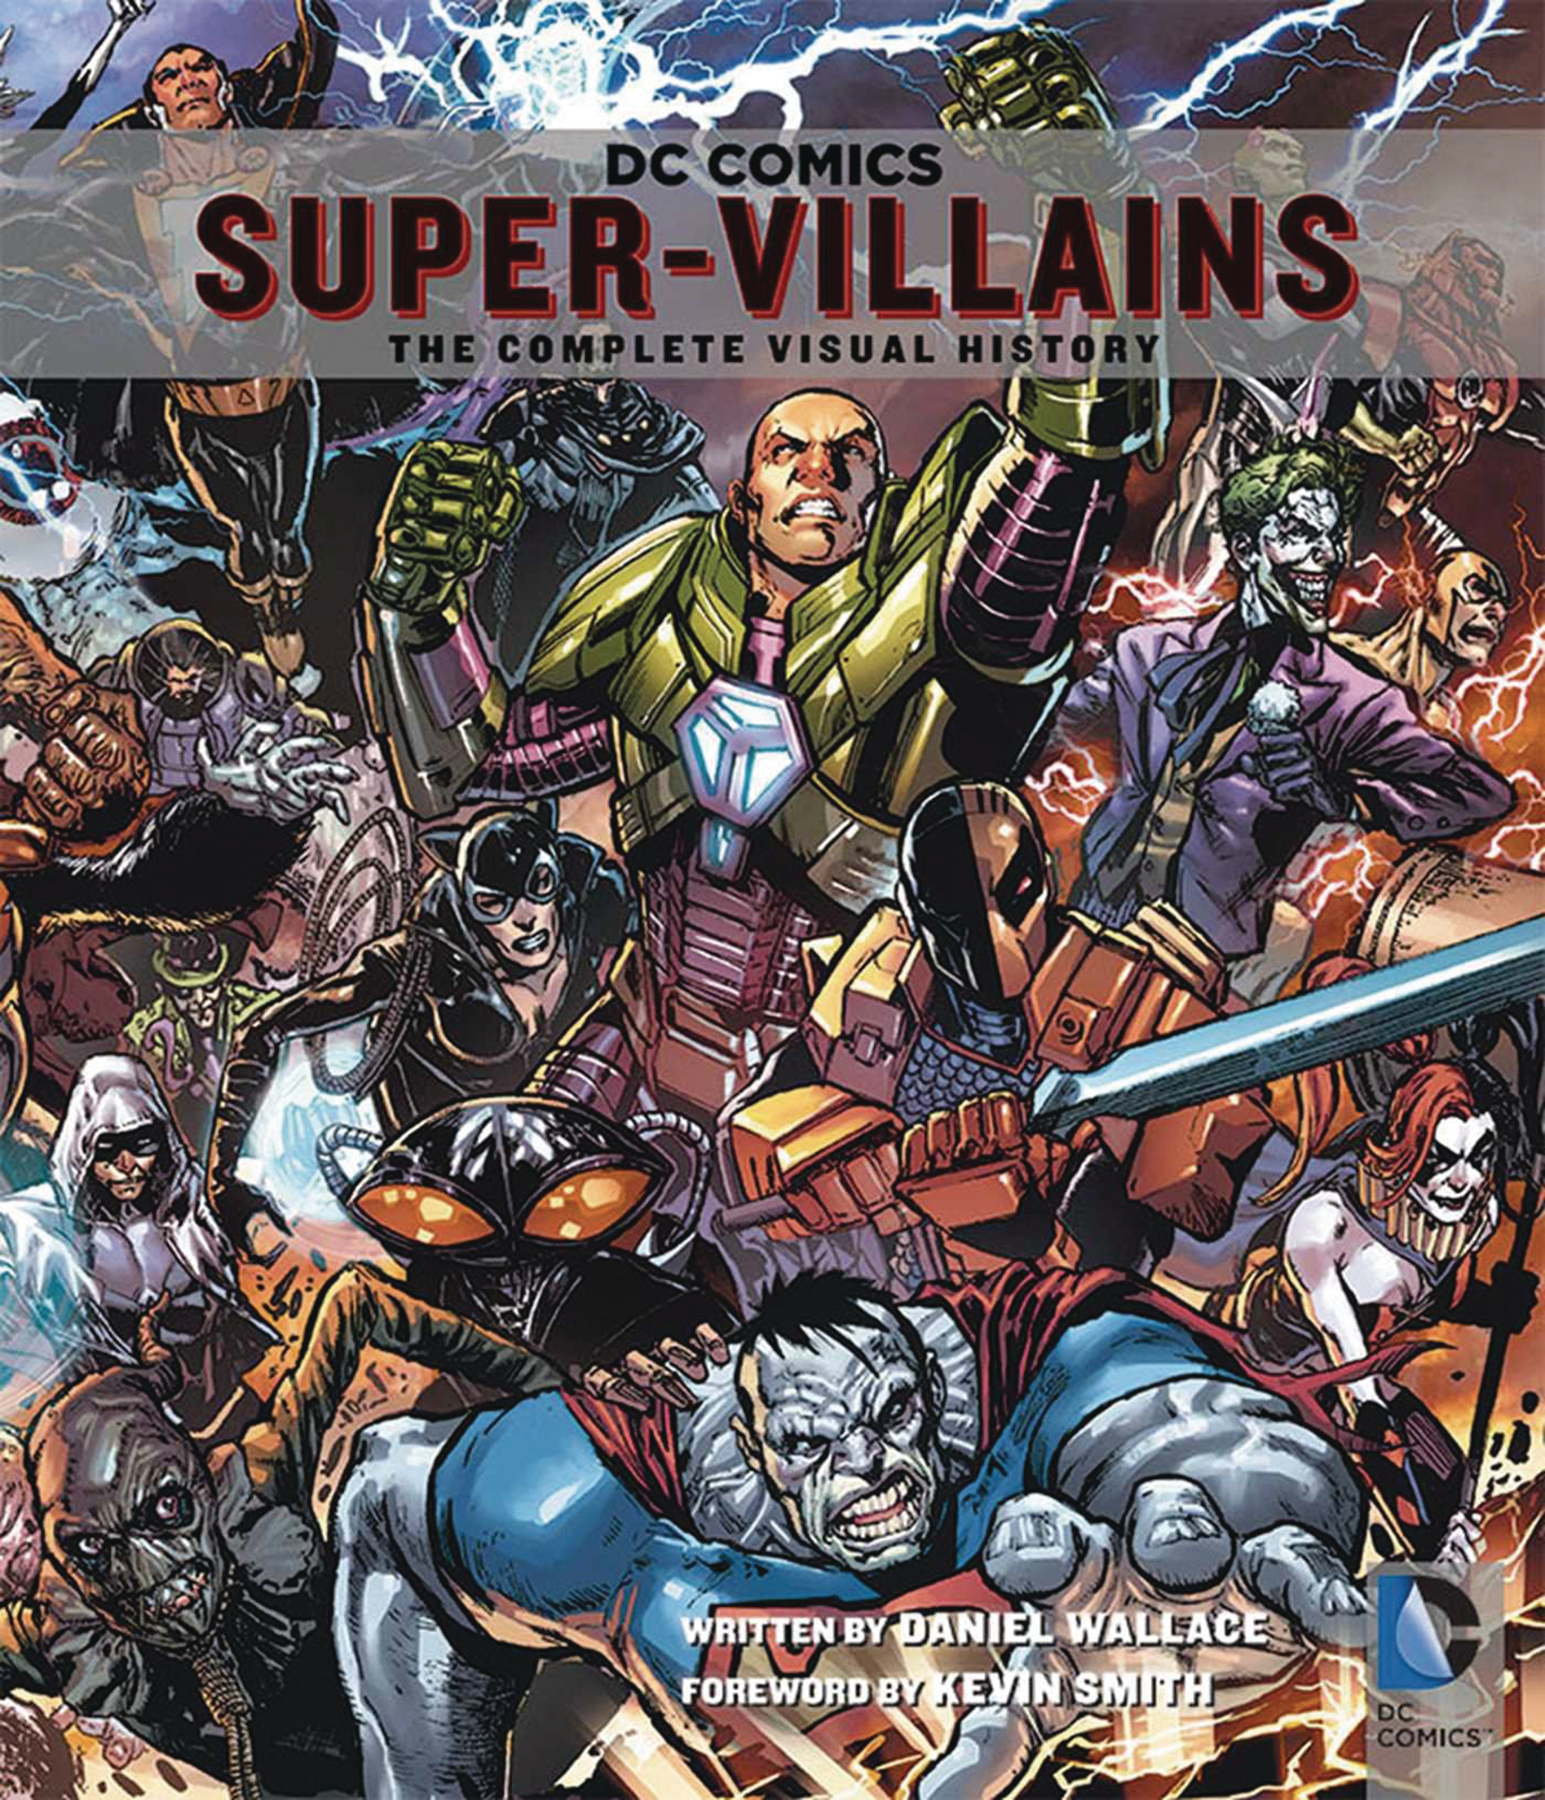 DC COMICS SUPER VILLAINS COMP VISUAL HIST SC